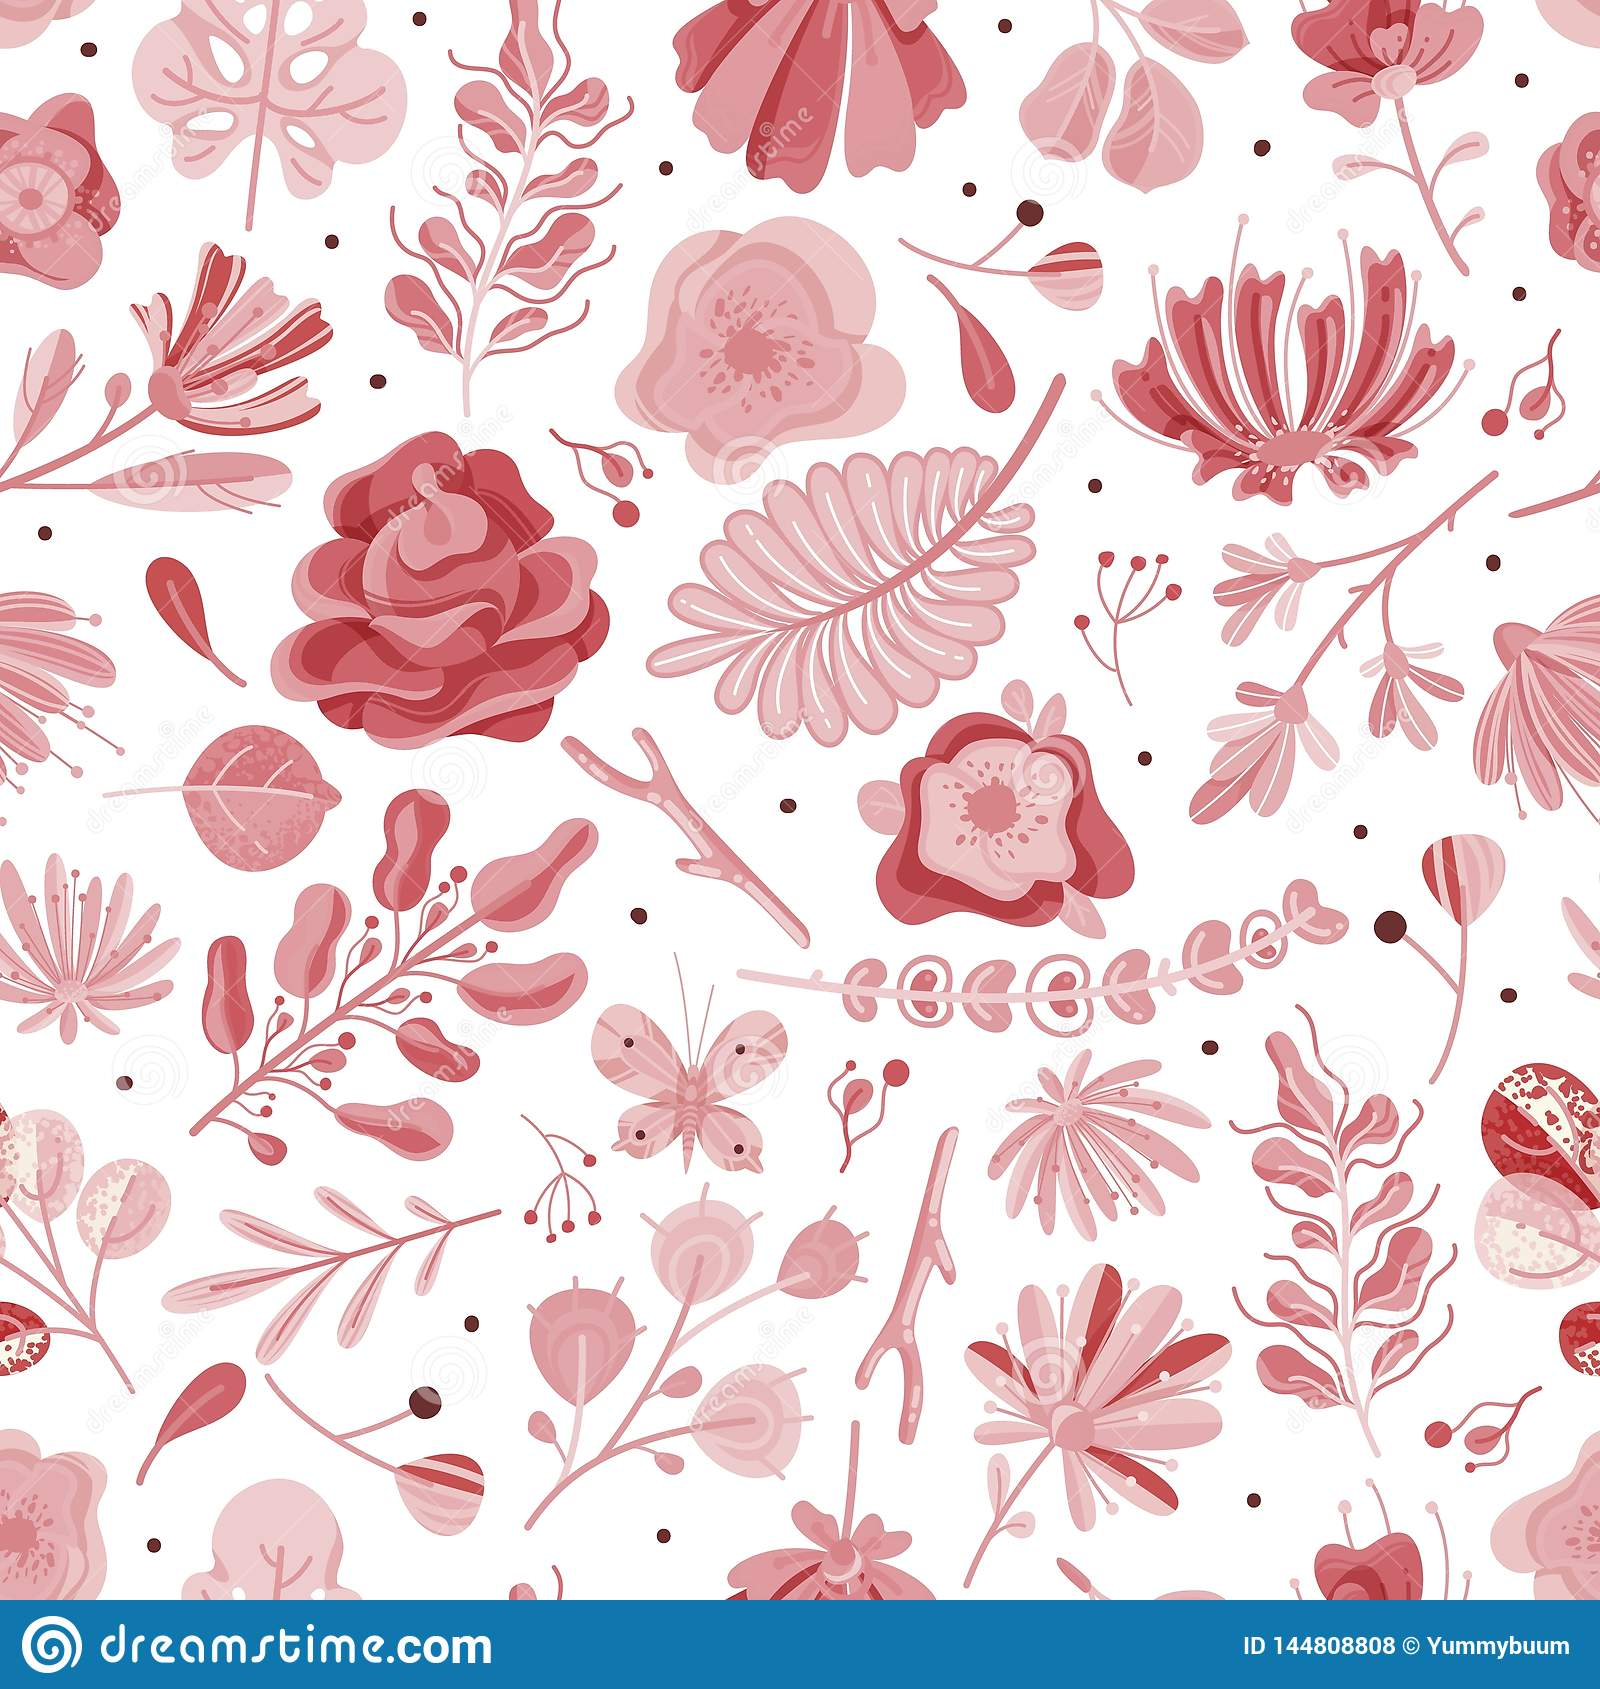 Coral Seamless Pattern Floral Spring Summer Garden Colorful Flowers Botanical Flower Vintage Texture Wallpaper Flat Stock Vector Illustration Of Natural Colorful 144808808